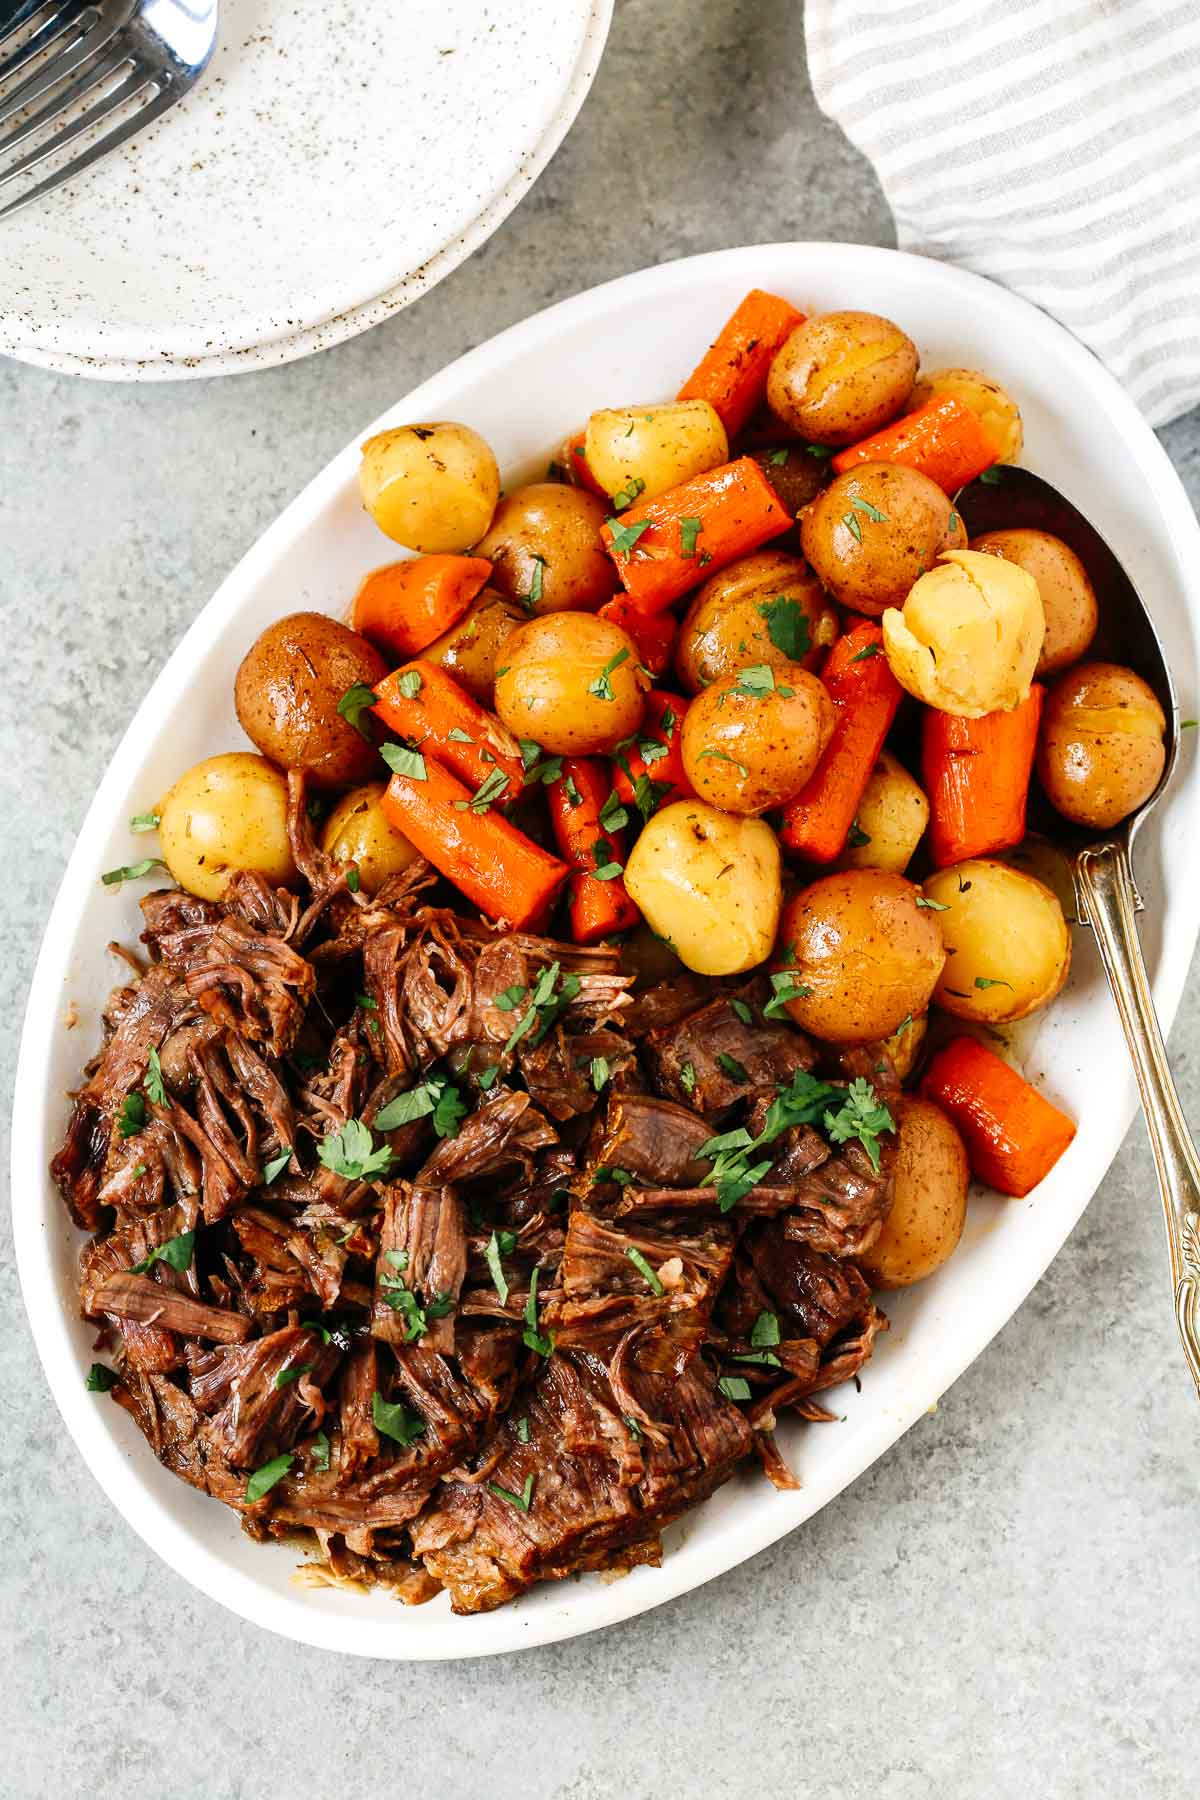 White serving plate containing Instant Pot pot roast and potatoes and carrots.